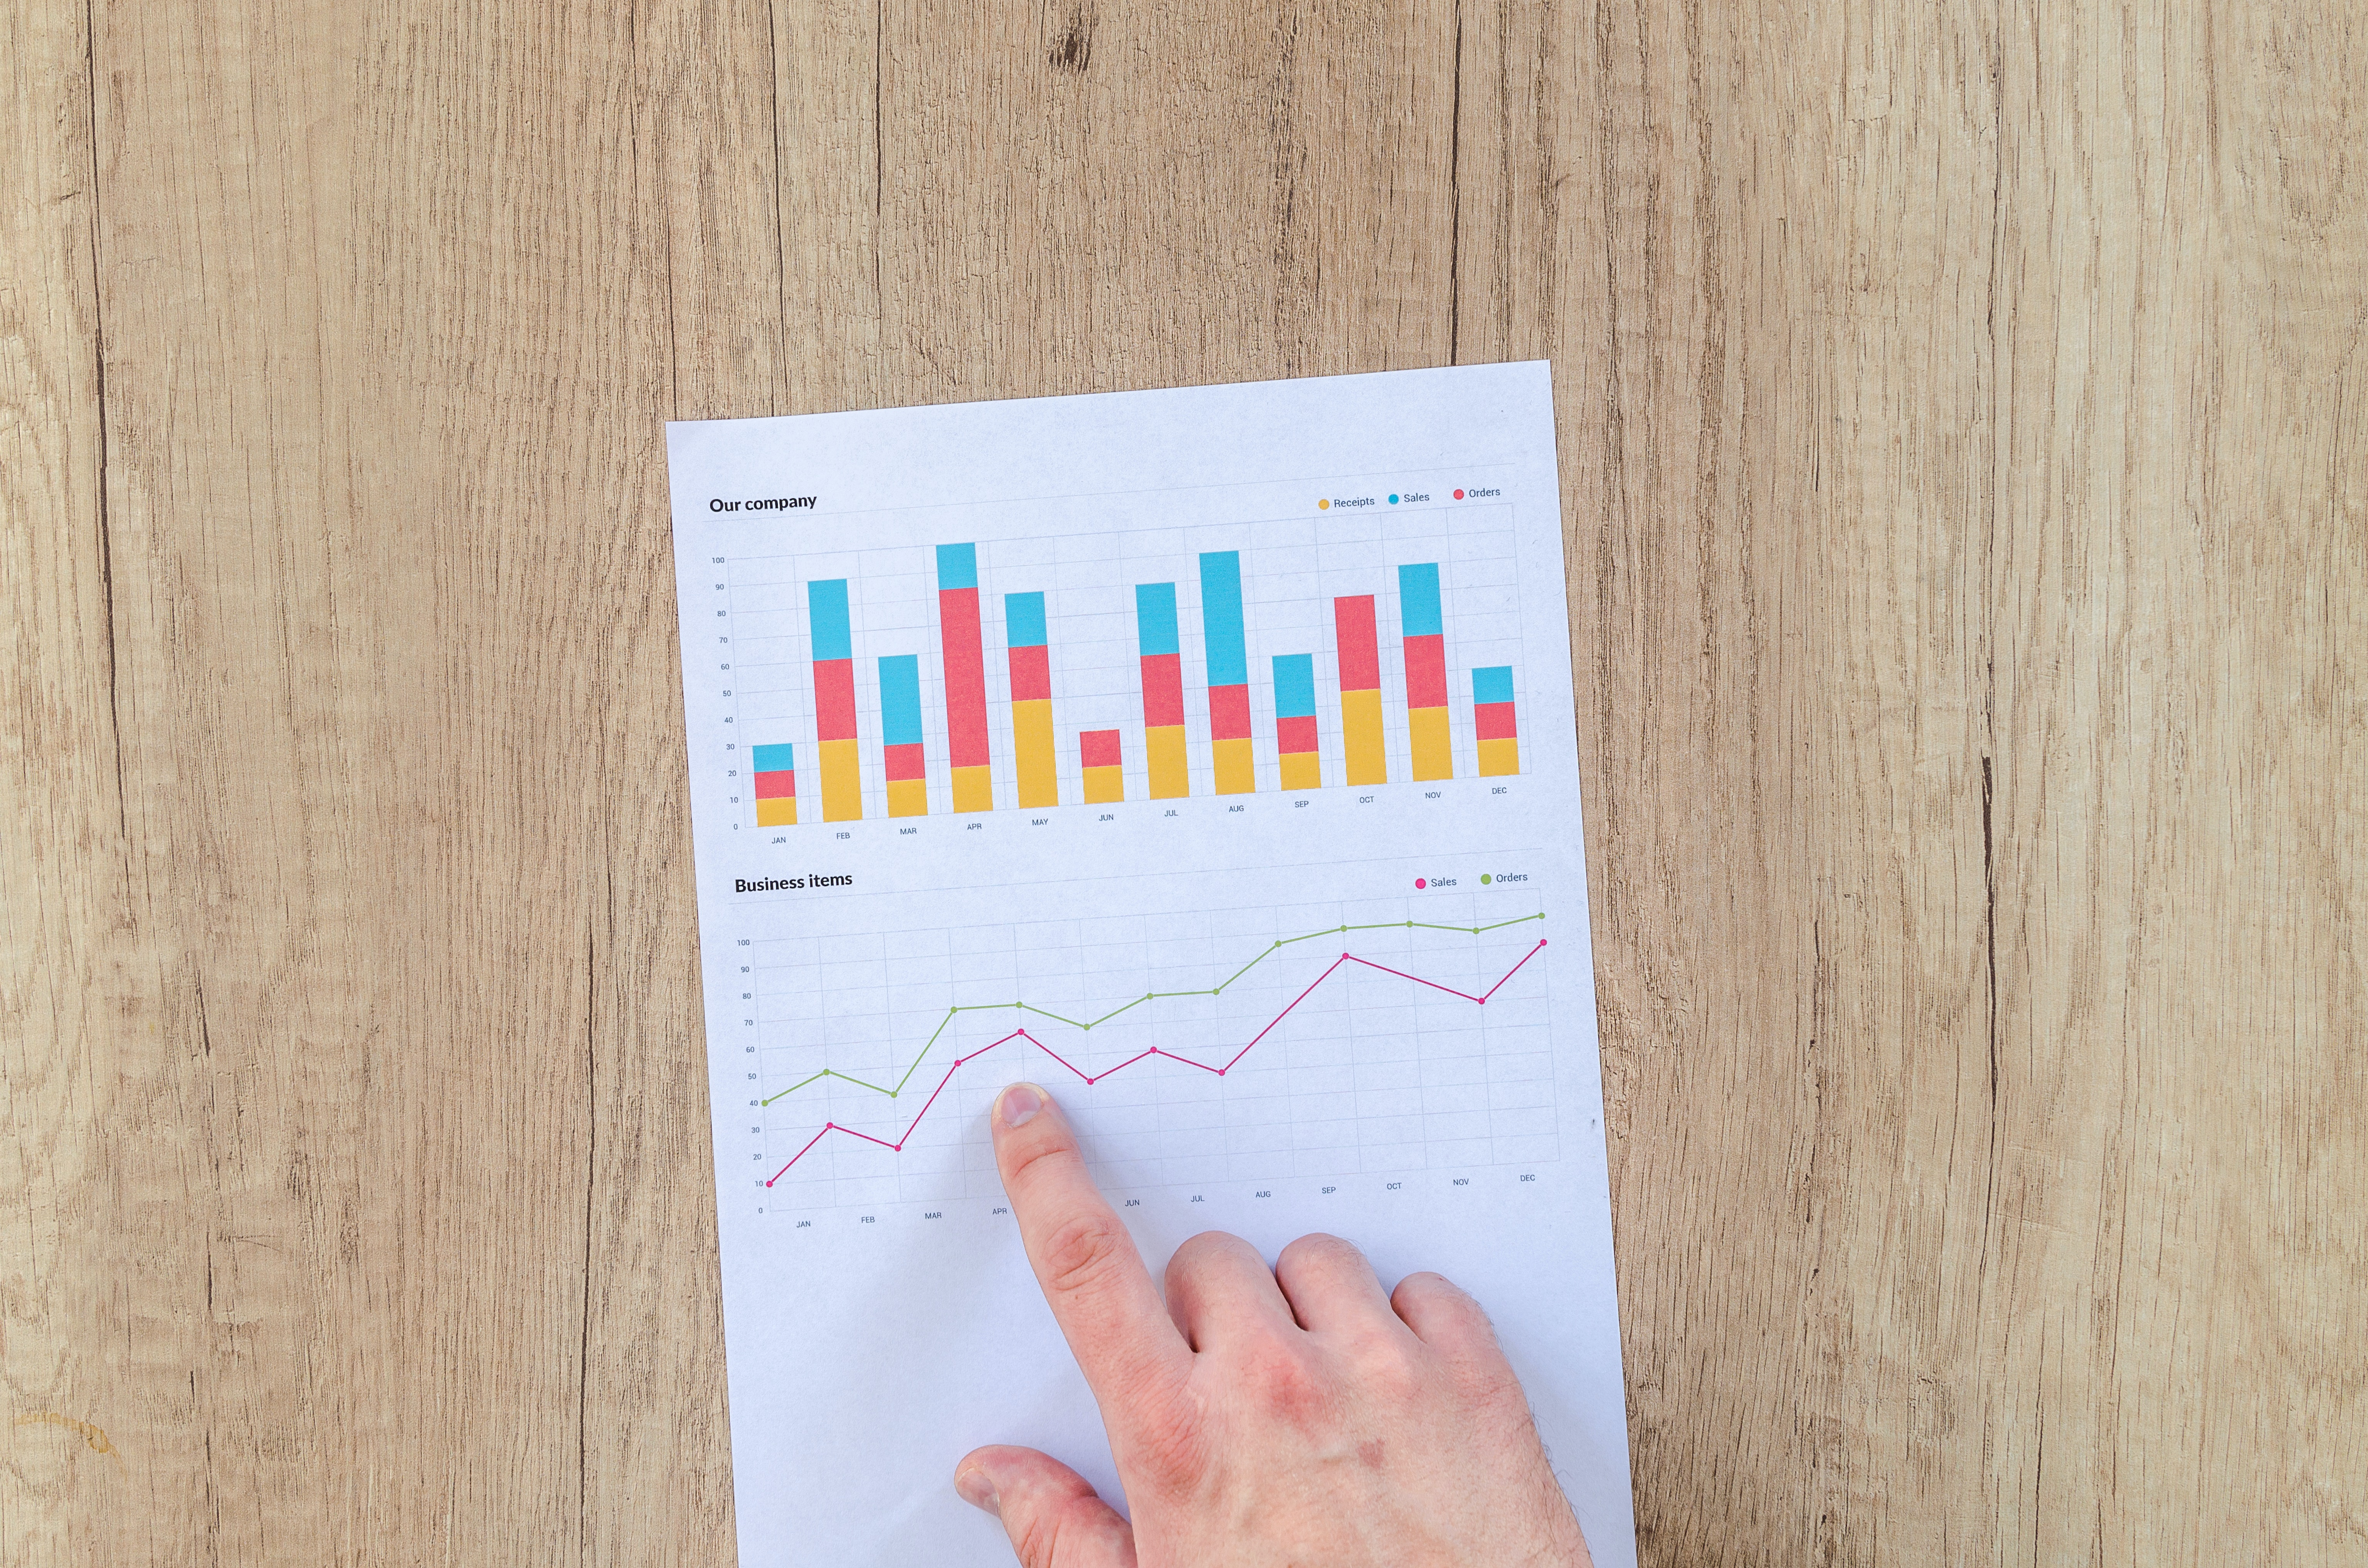 How to Use Digital Waivers to Capture Customer Data